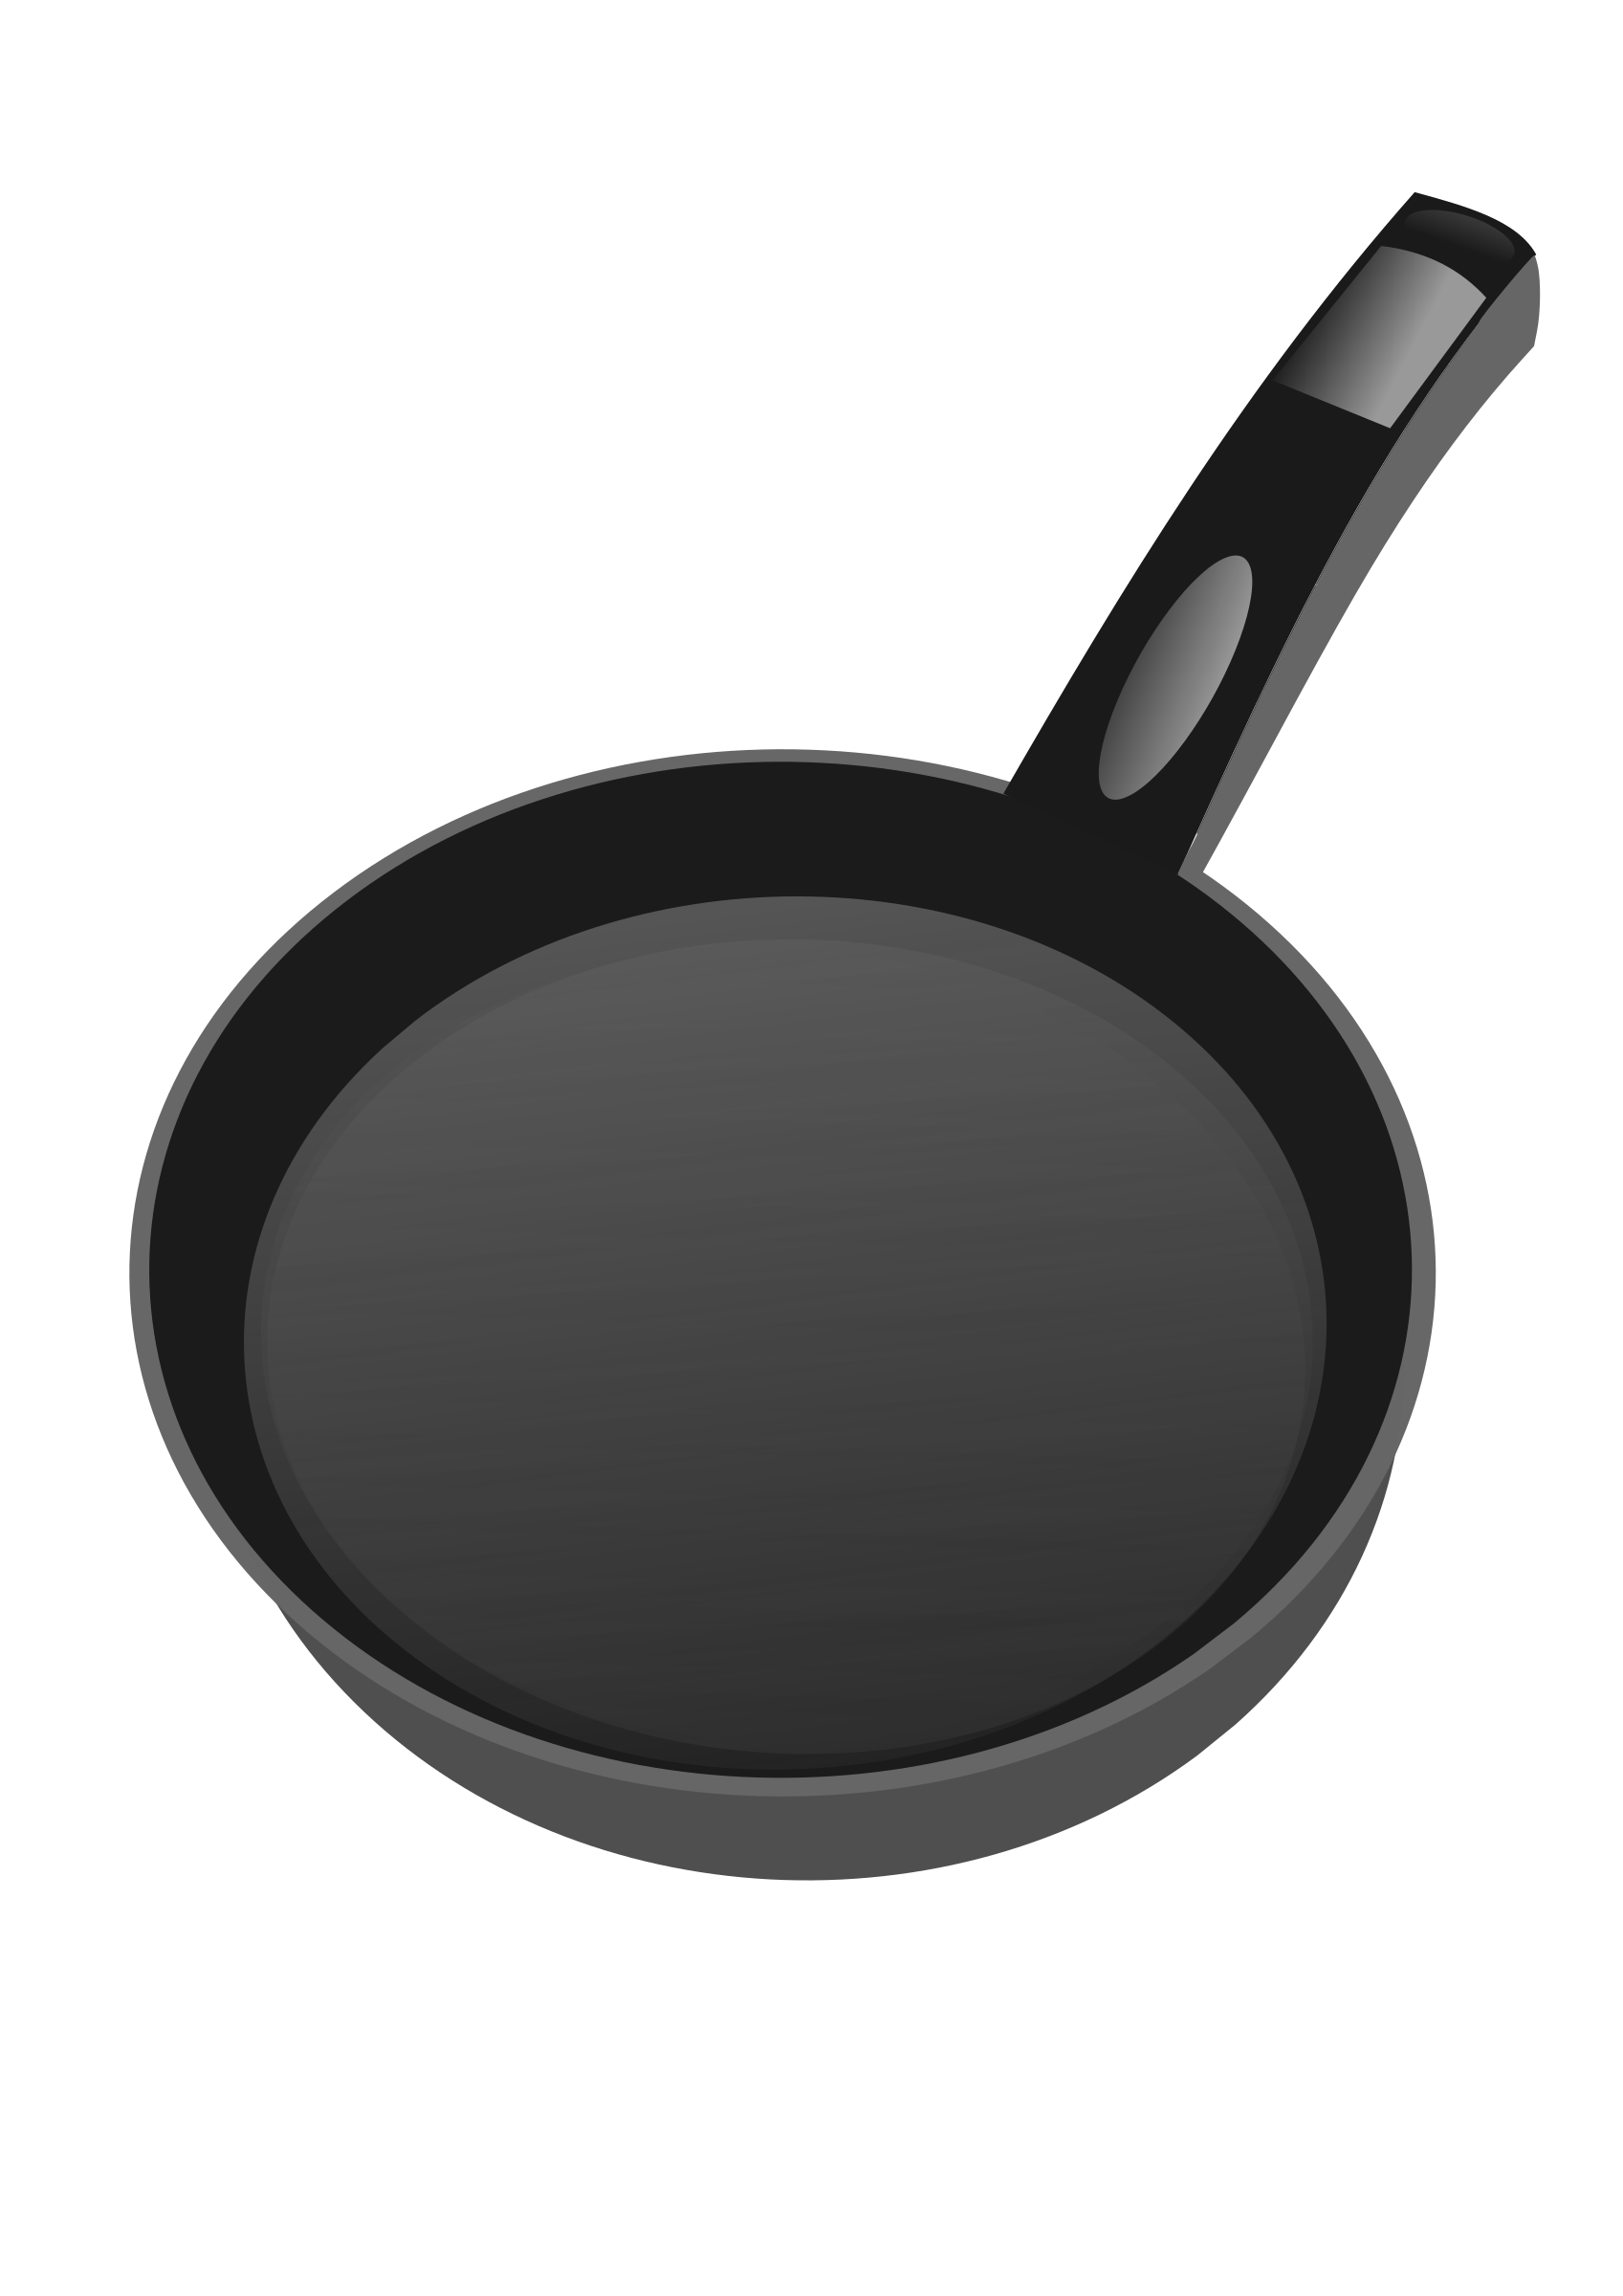 cooking pan png